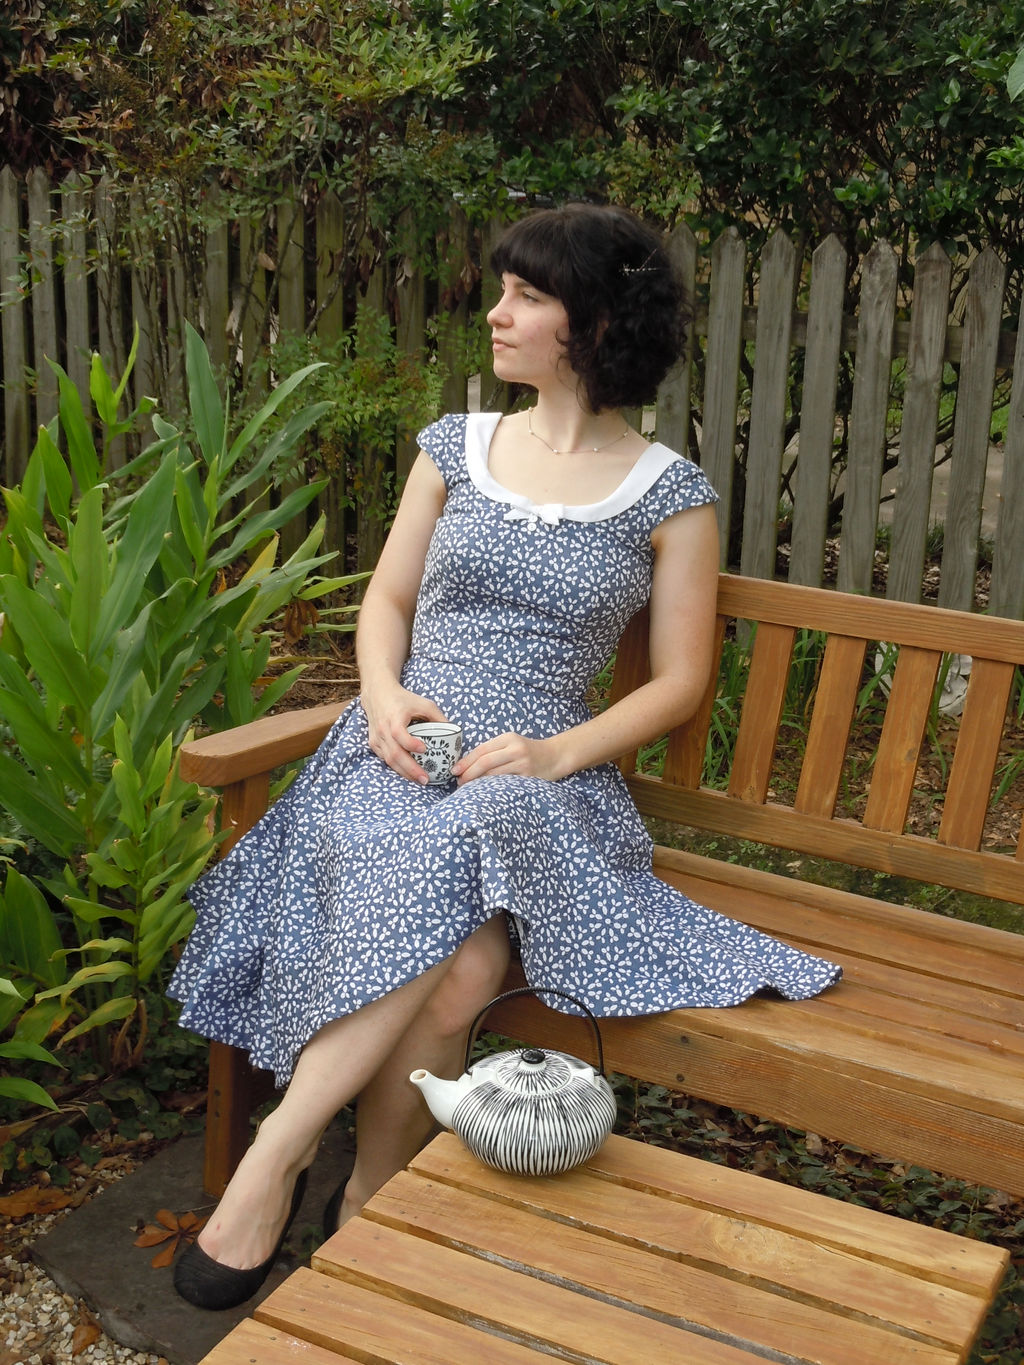 blue jacquard dress with a full circle skirt and white collar with button detail